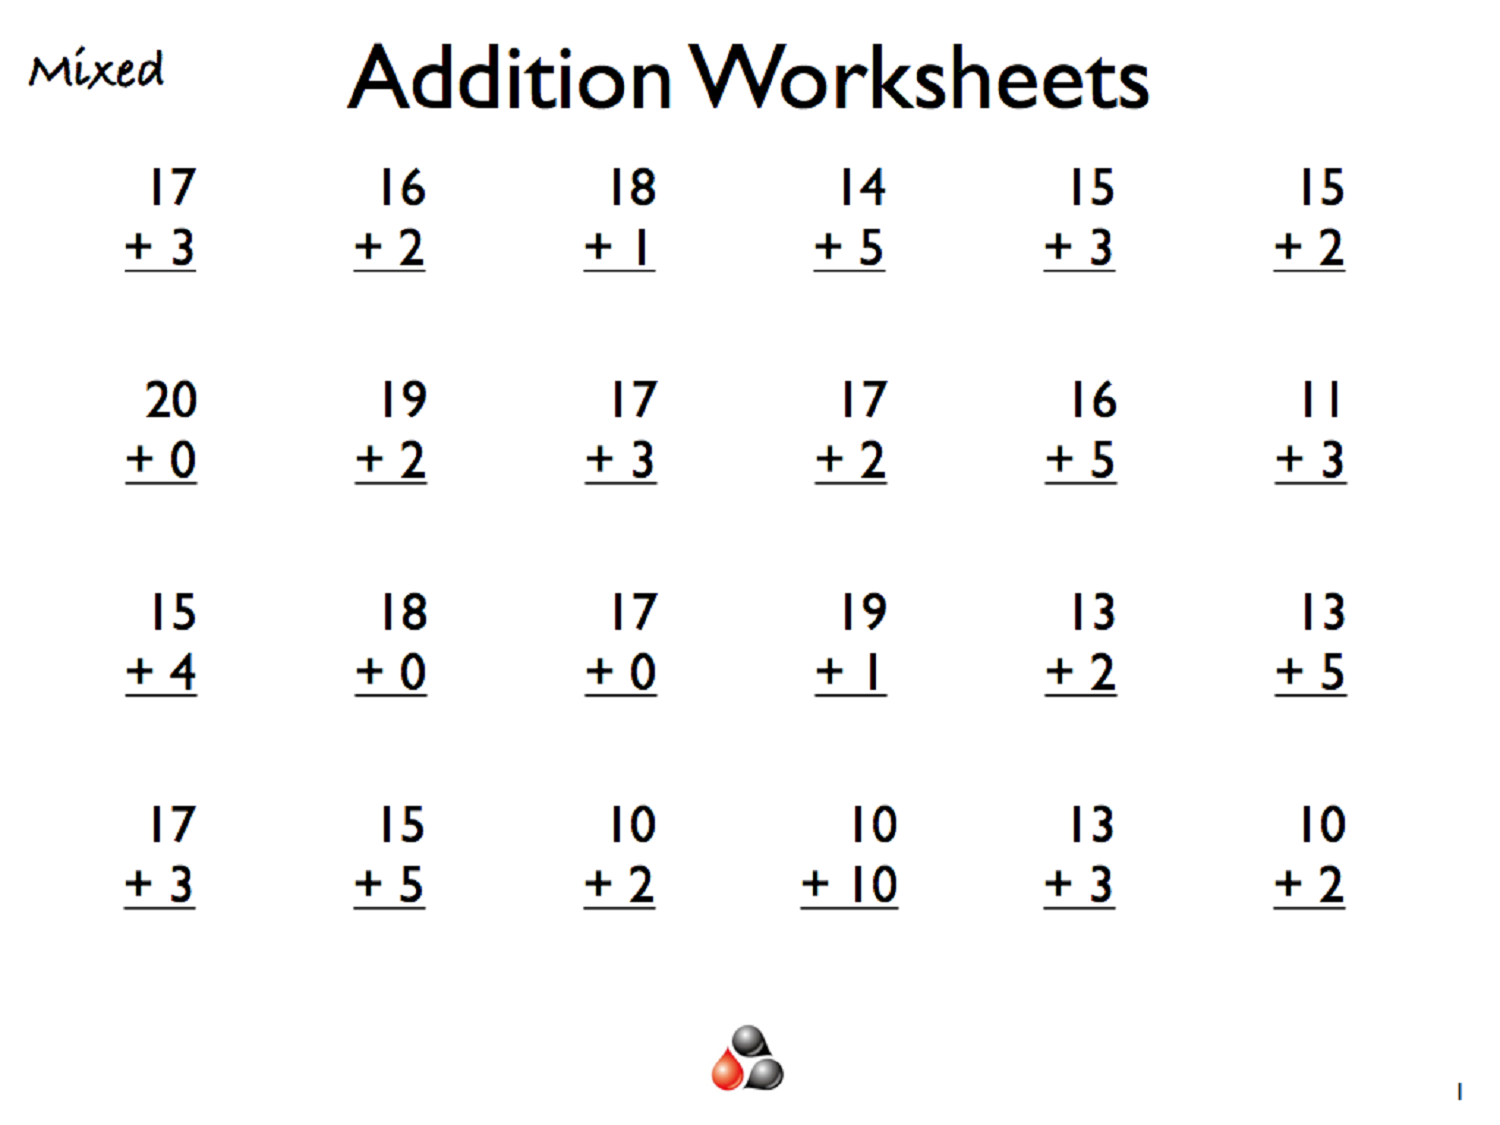 Addition For Worksheets For Grade 1 Is Helpful Educative Media – Kindergarten Worksheets Addition